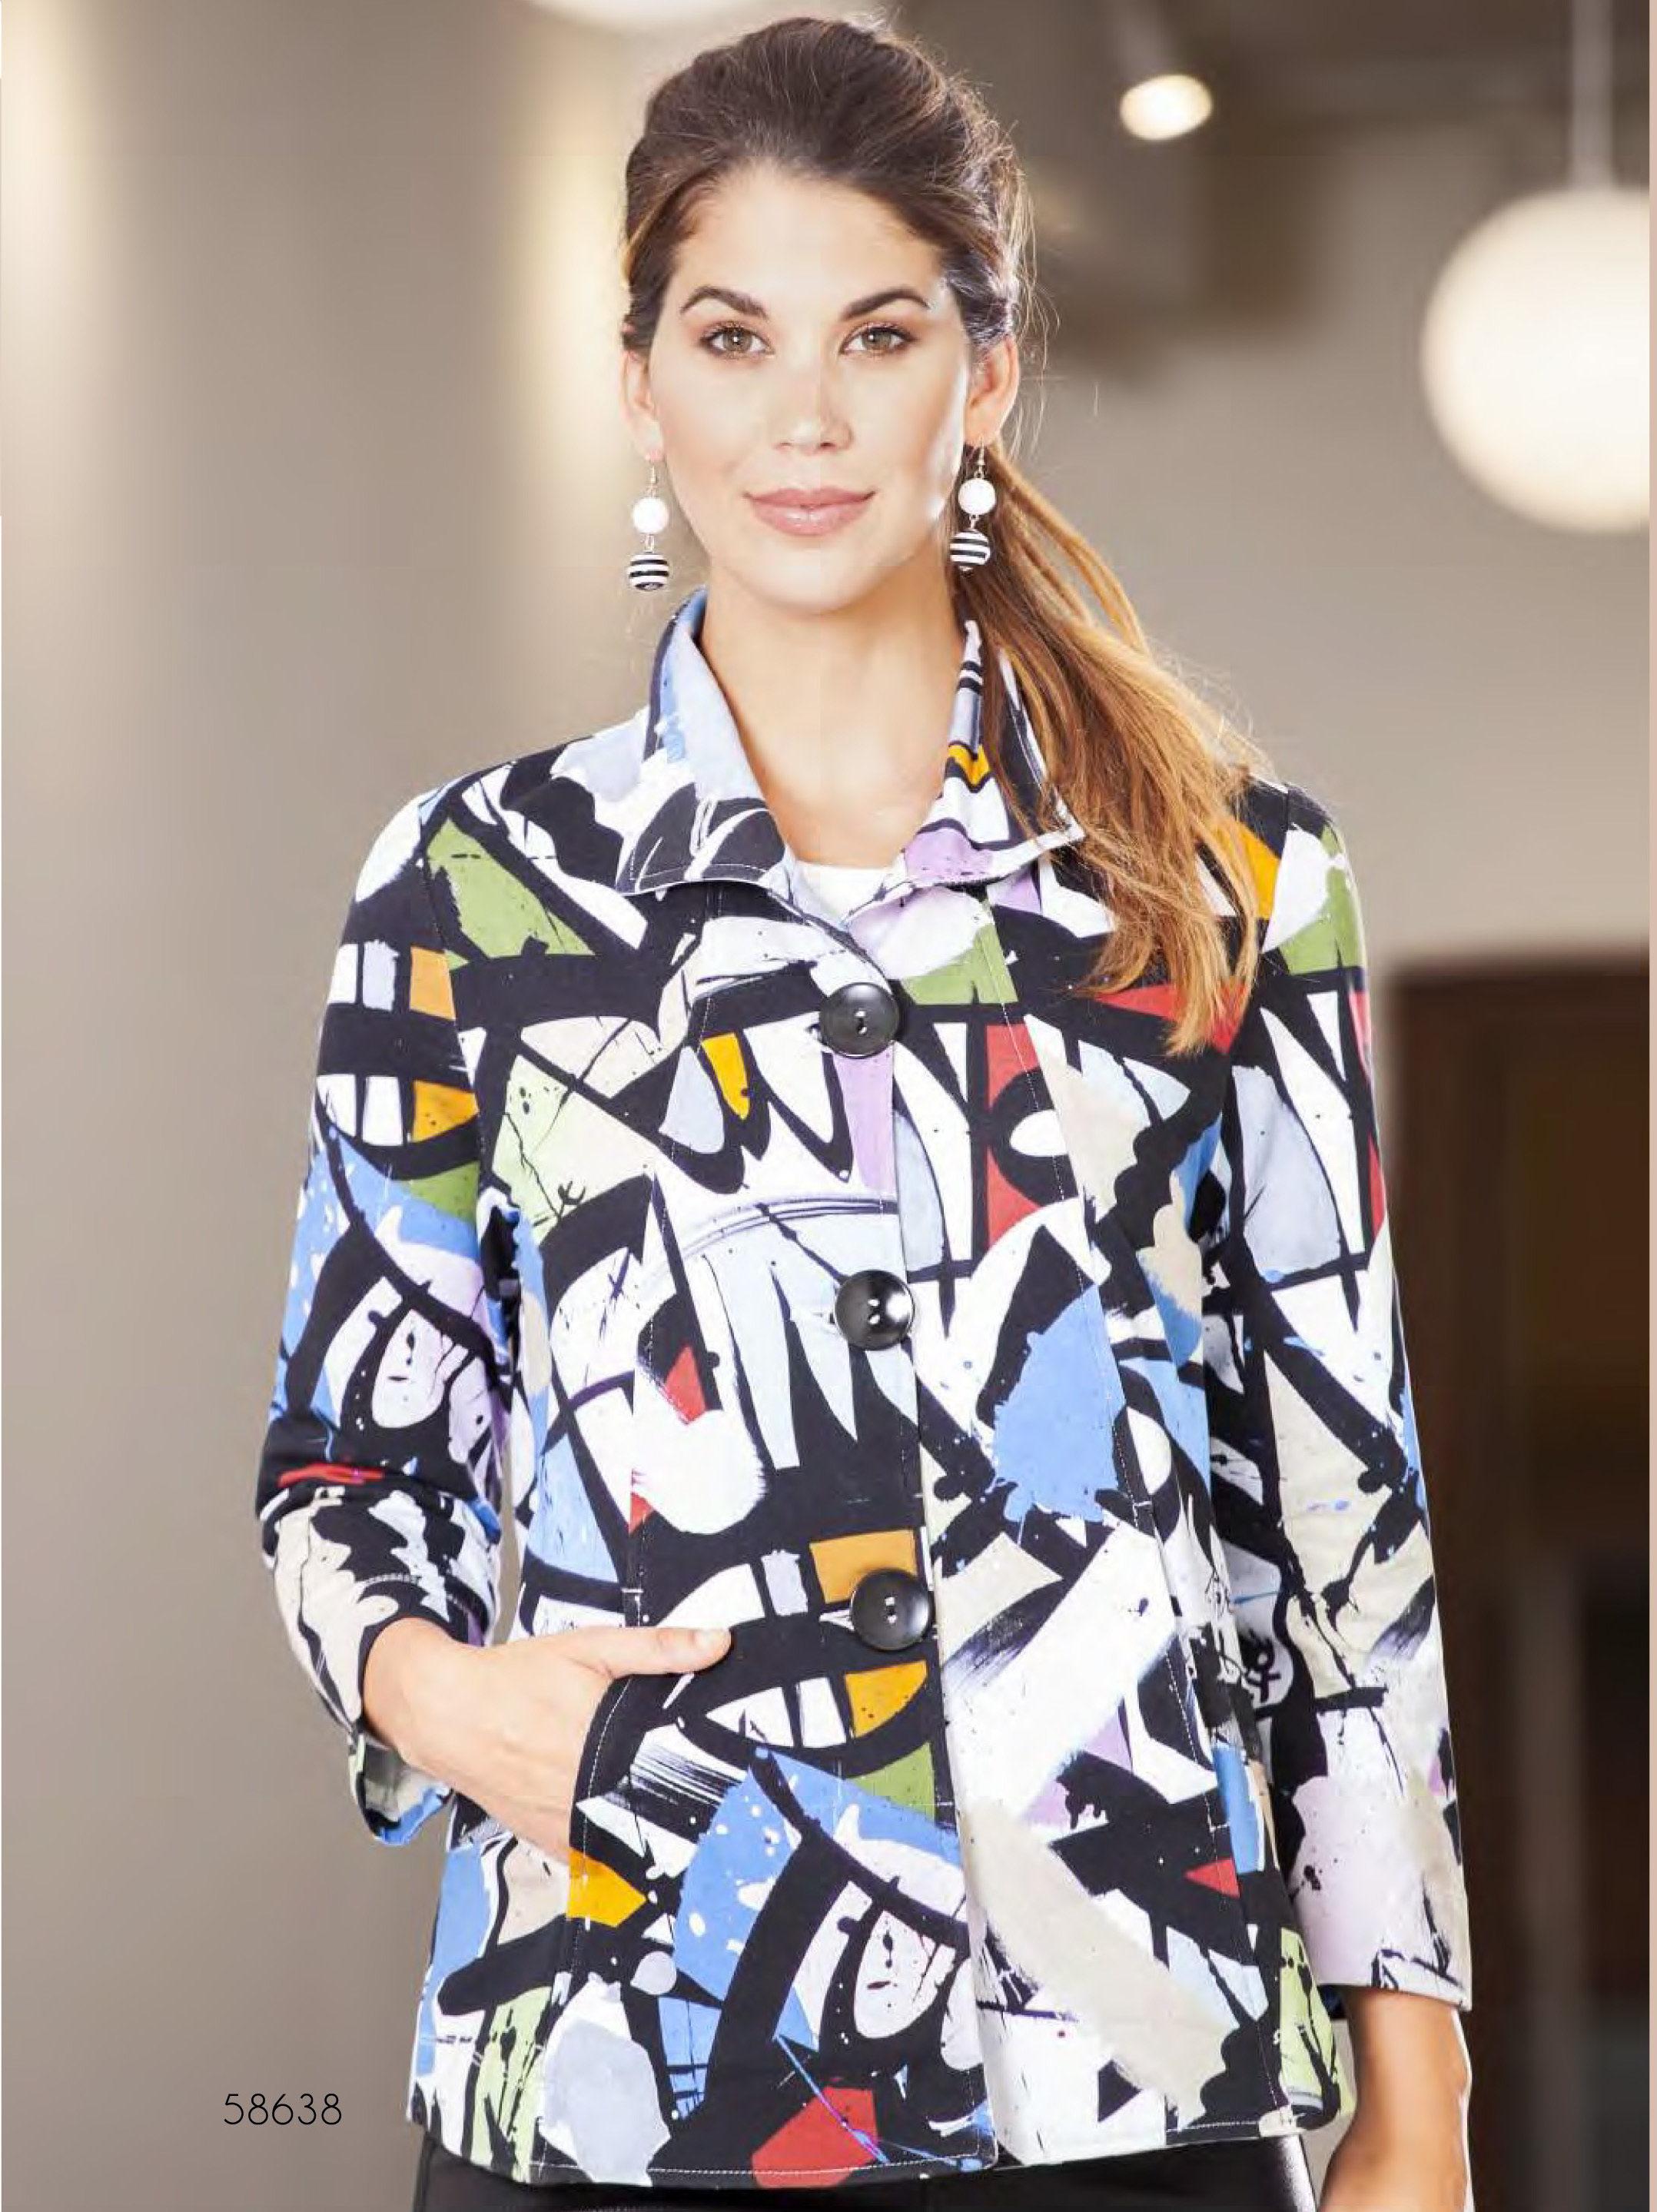 Simply Art Dolcezza: Gorgeous Graffiti Art Knit Cardigan Jacket (2 Left!) DOLCEZZA_SIMPLYART_58638_N1